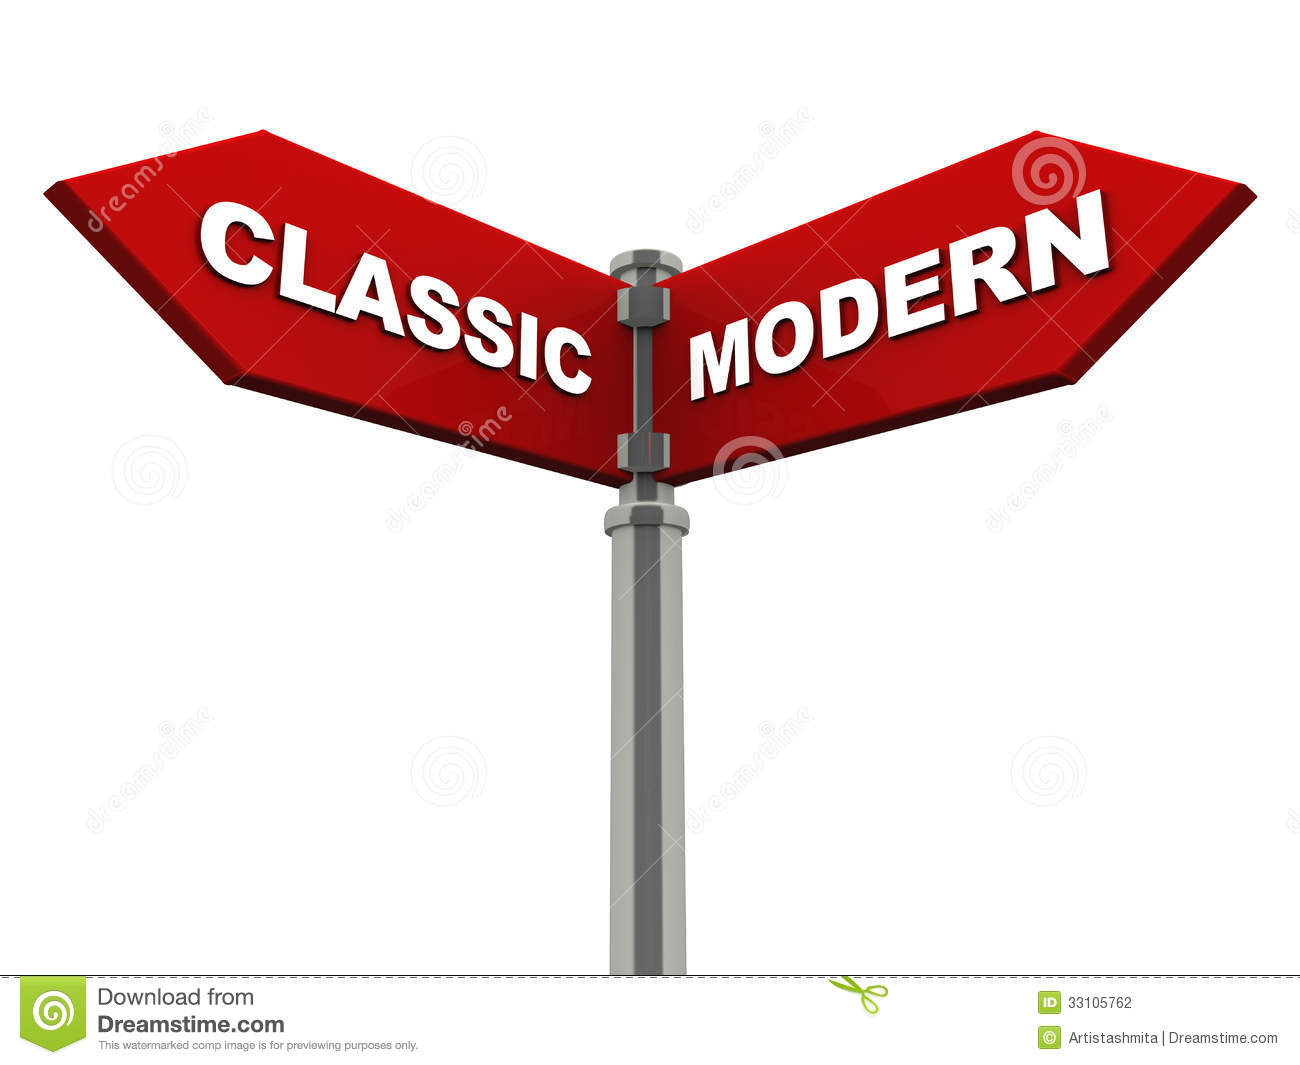 Modernists vs traditionalists sunday s background